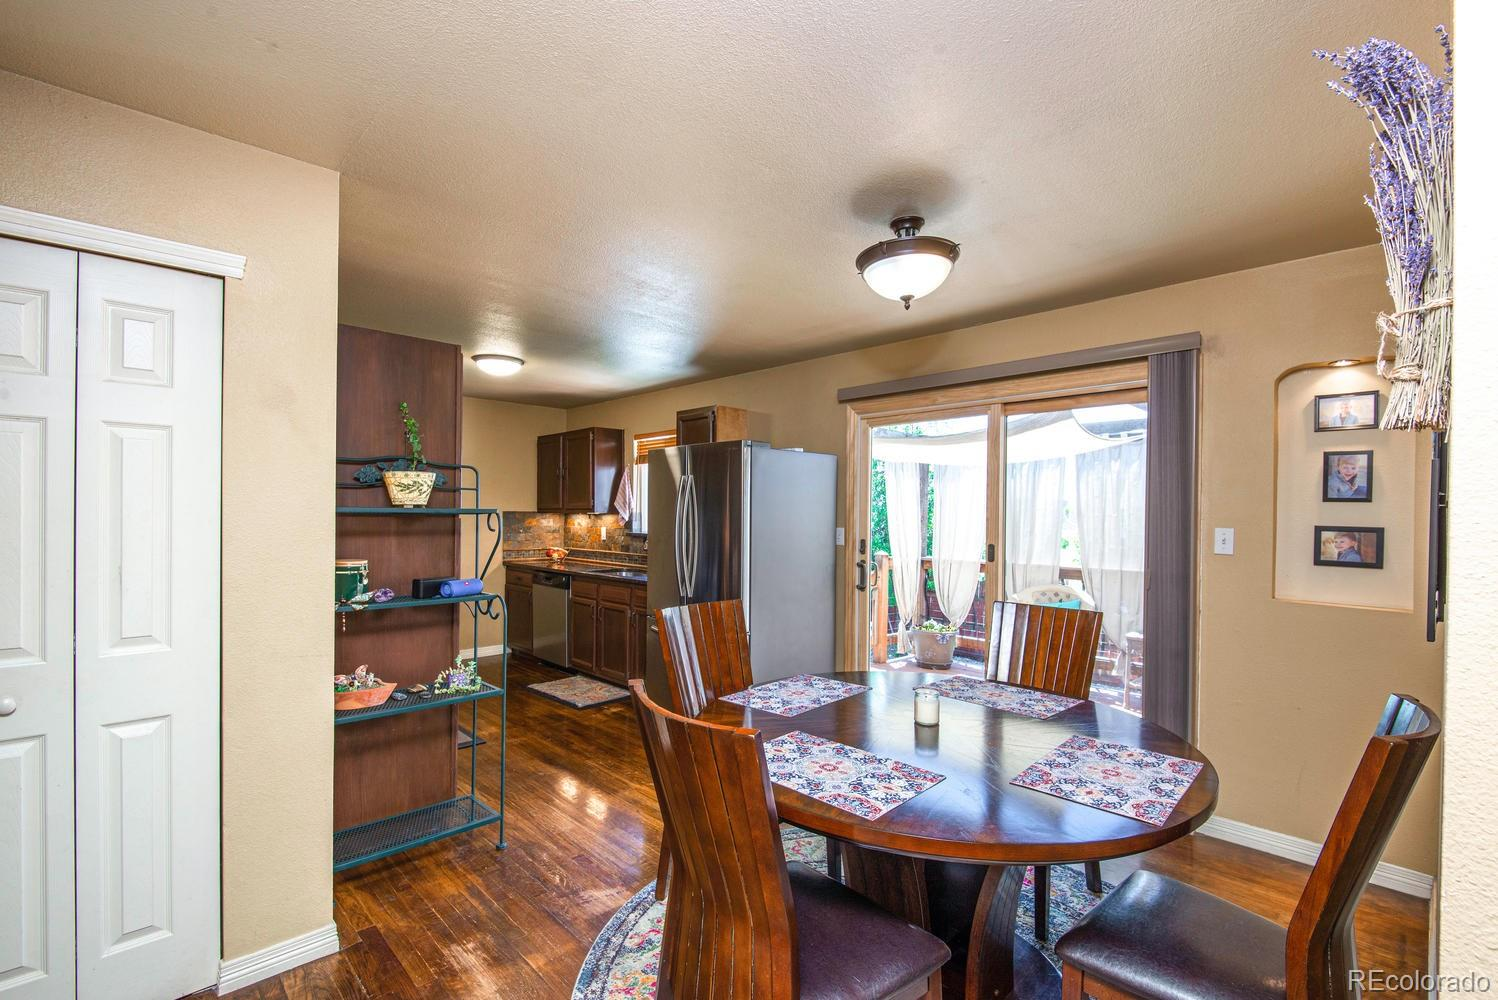 MLS# 7060125 - 11 - 901 Cottonwood Court, Fort Lupton, CO 80621